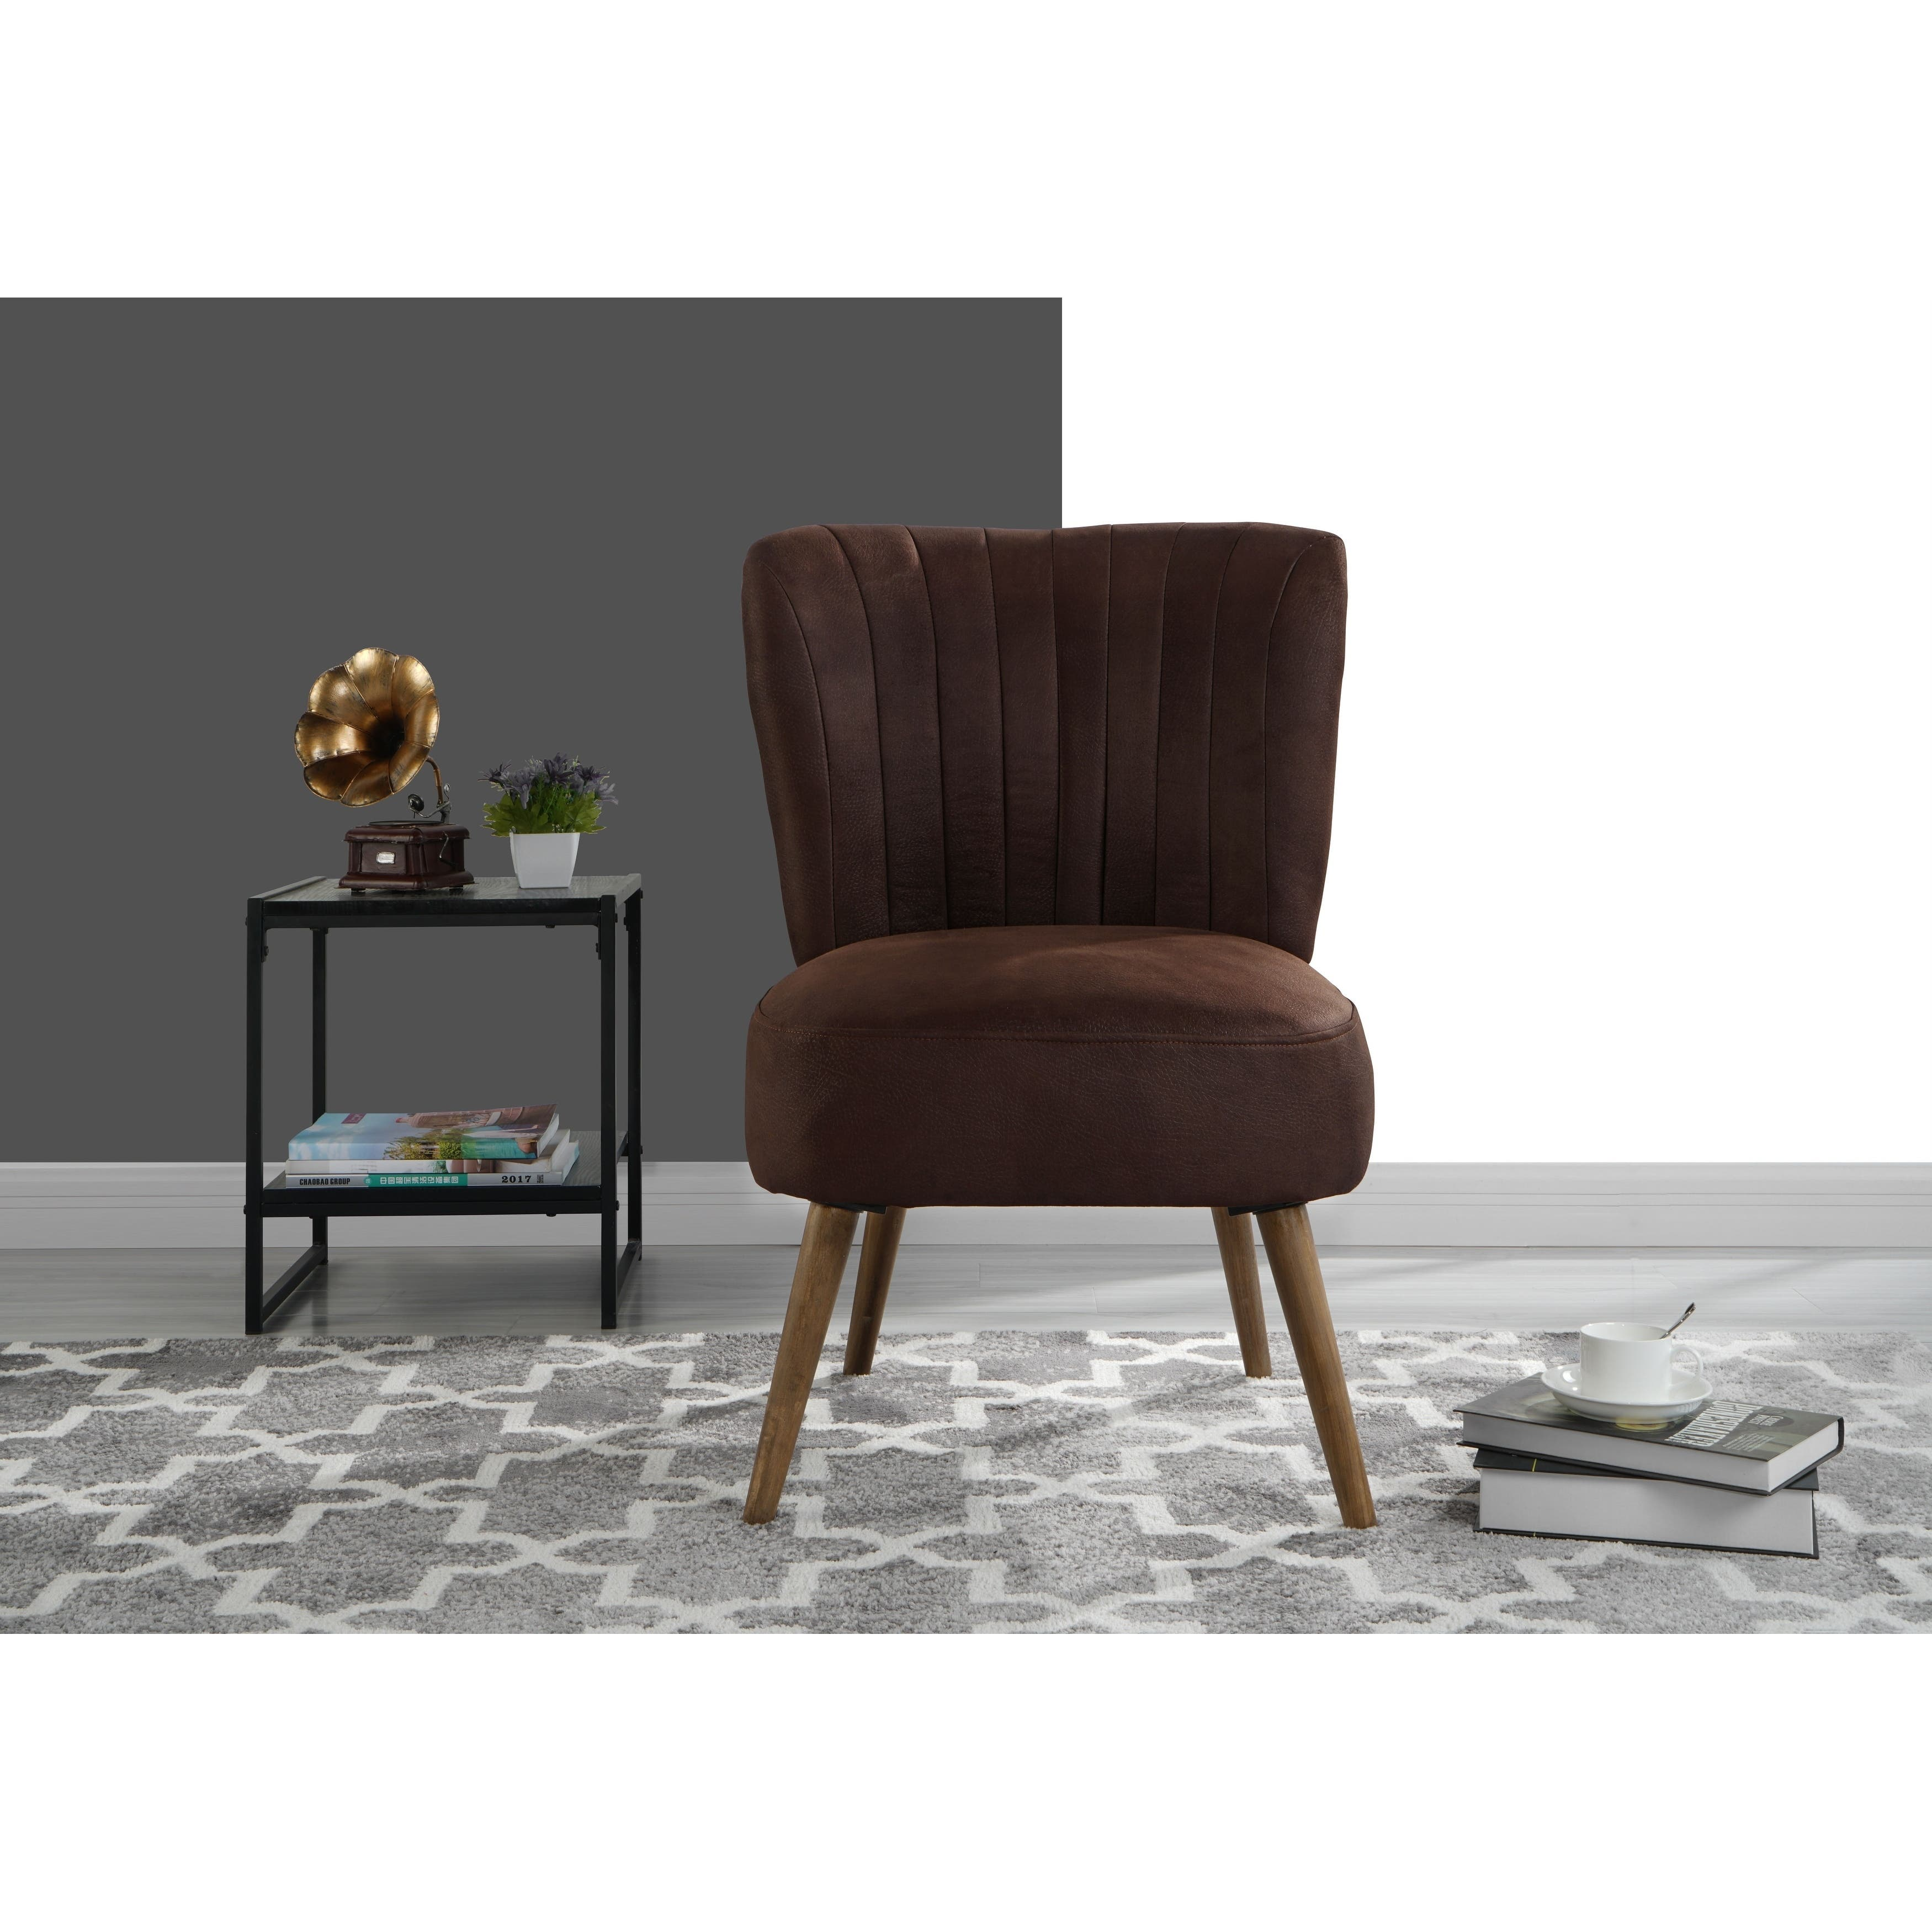 Living Room Furniture Deals: Buy Living Room Chairs Online At Overstock